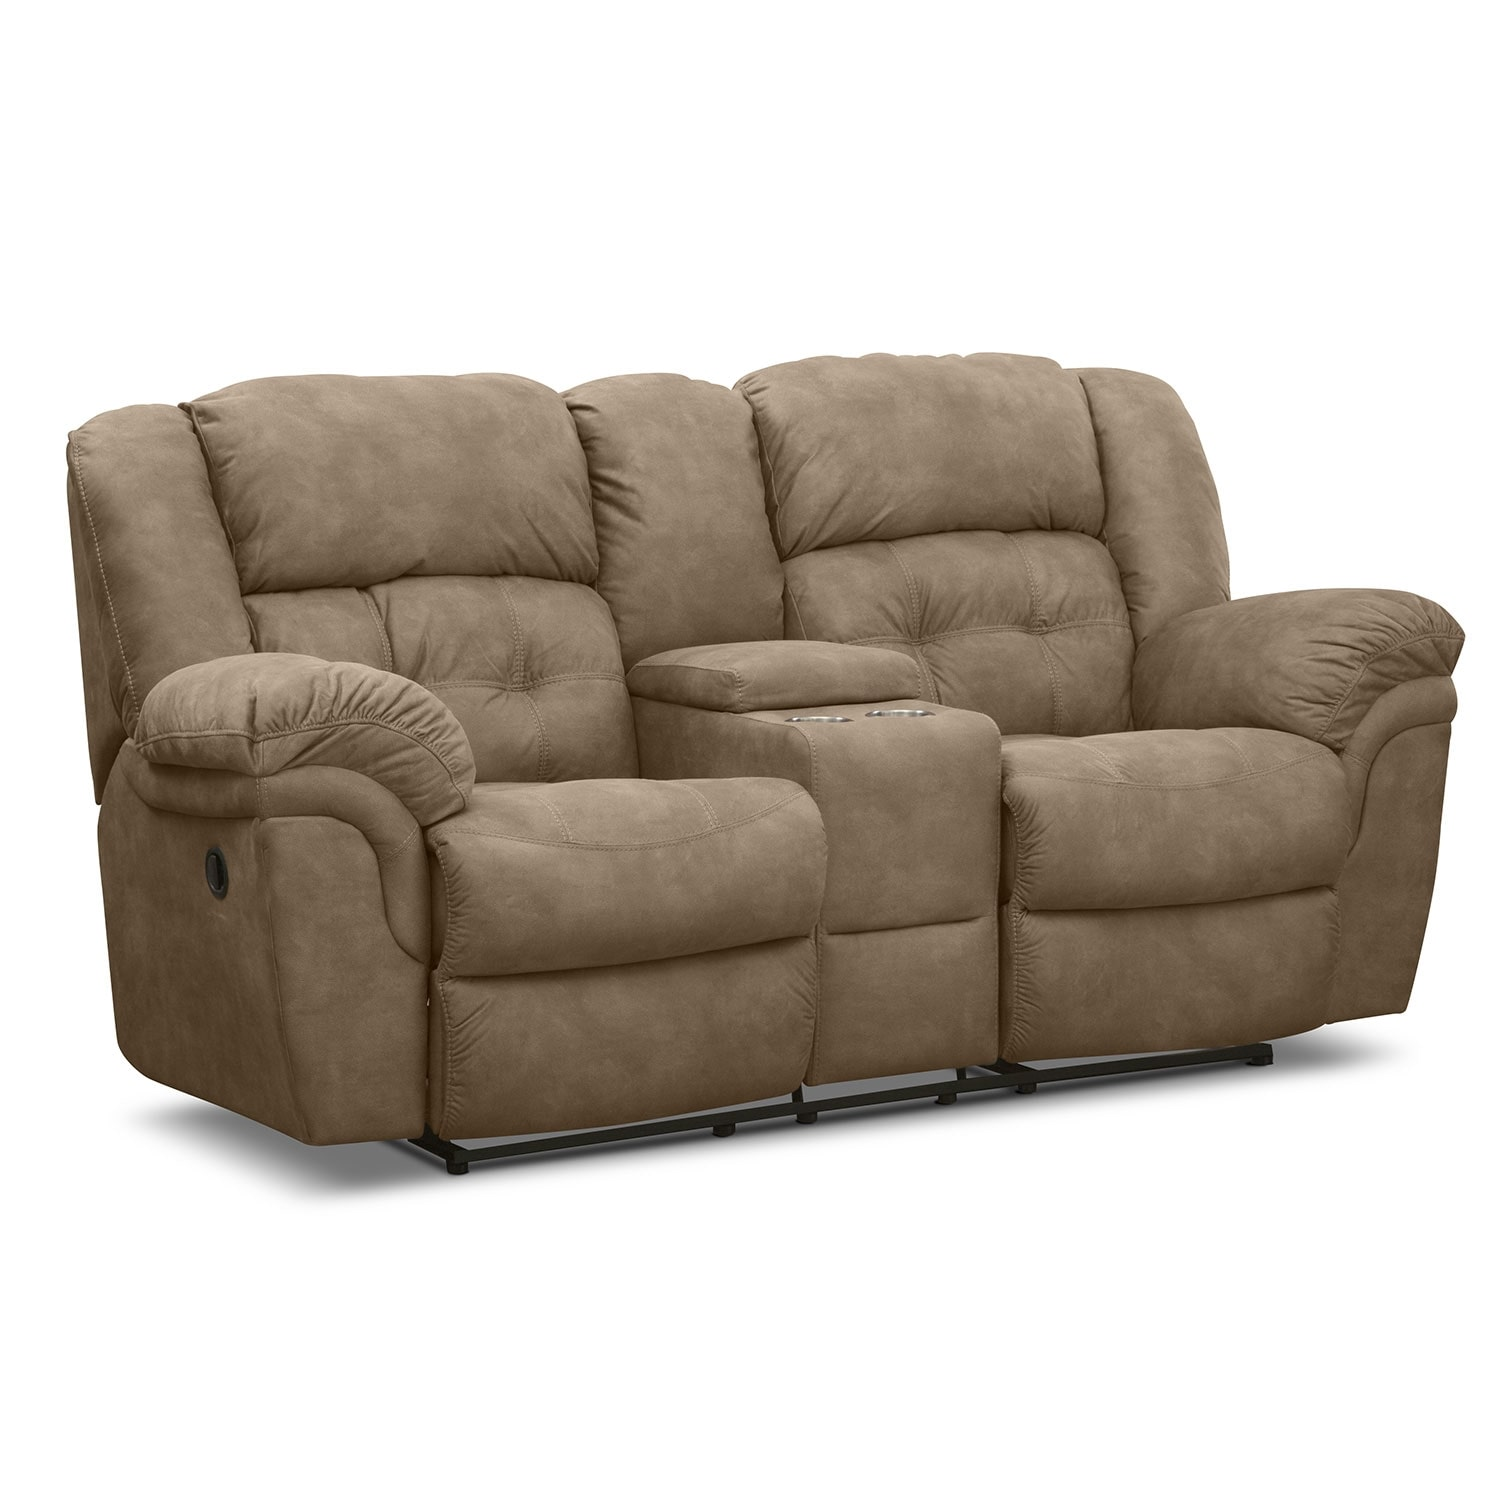 Living Room Furniture - Lancer Pecan Reclining Loveseat with Console